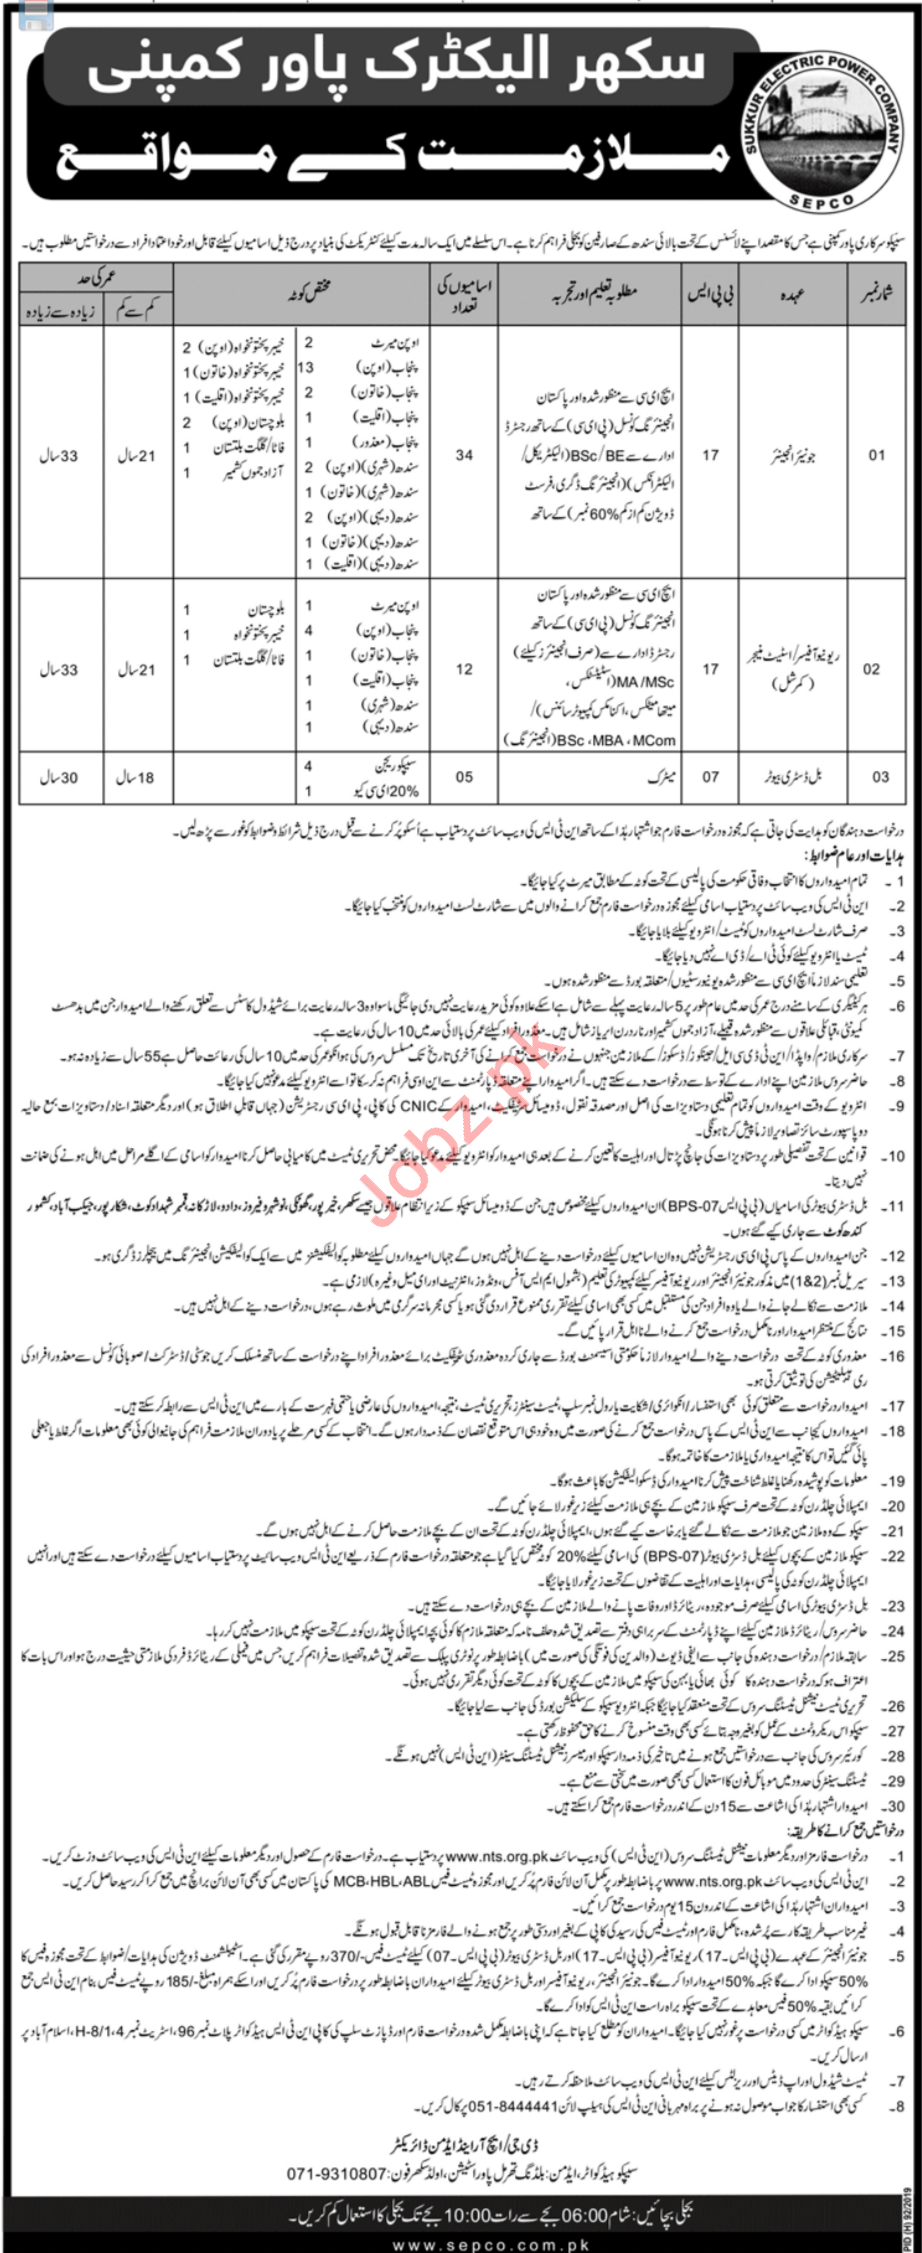 Sukkur Electric Power Company SEPCO Jobs 2019 via NTS